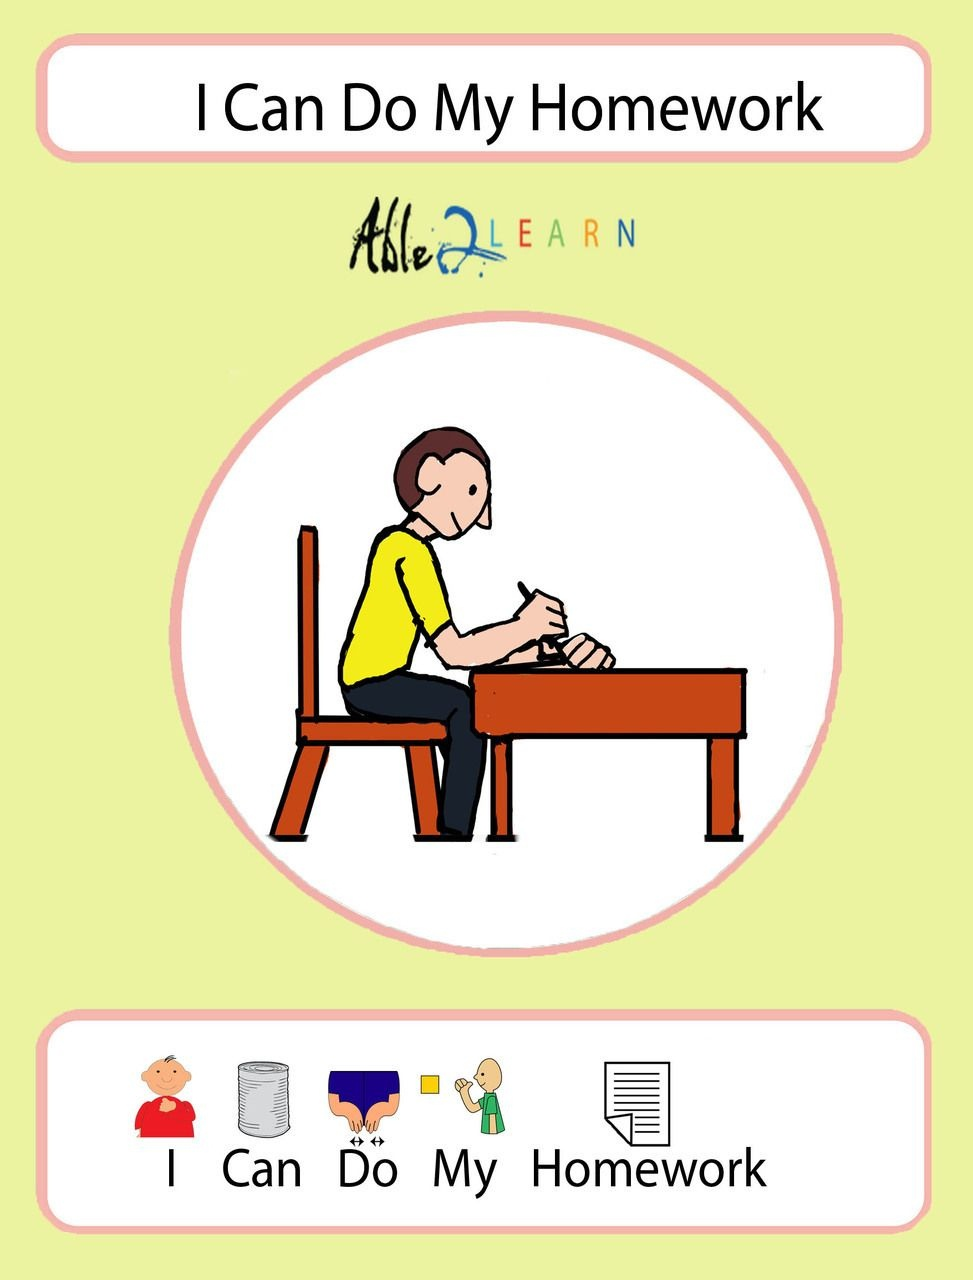 I Can Do My Homework Social Story: Pages 10 | Icons | Social Stories - Free Printable Social Stories